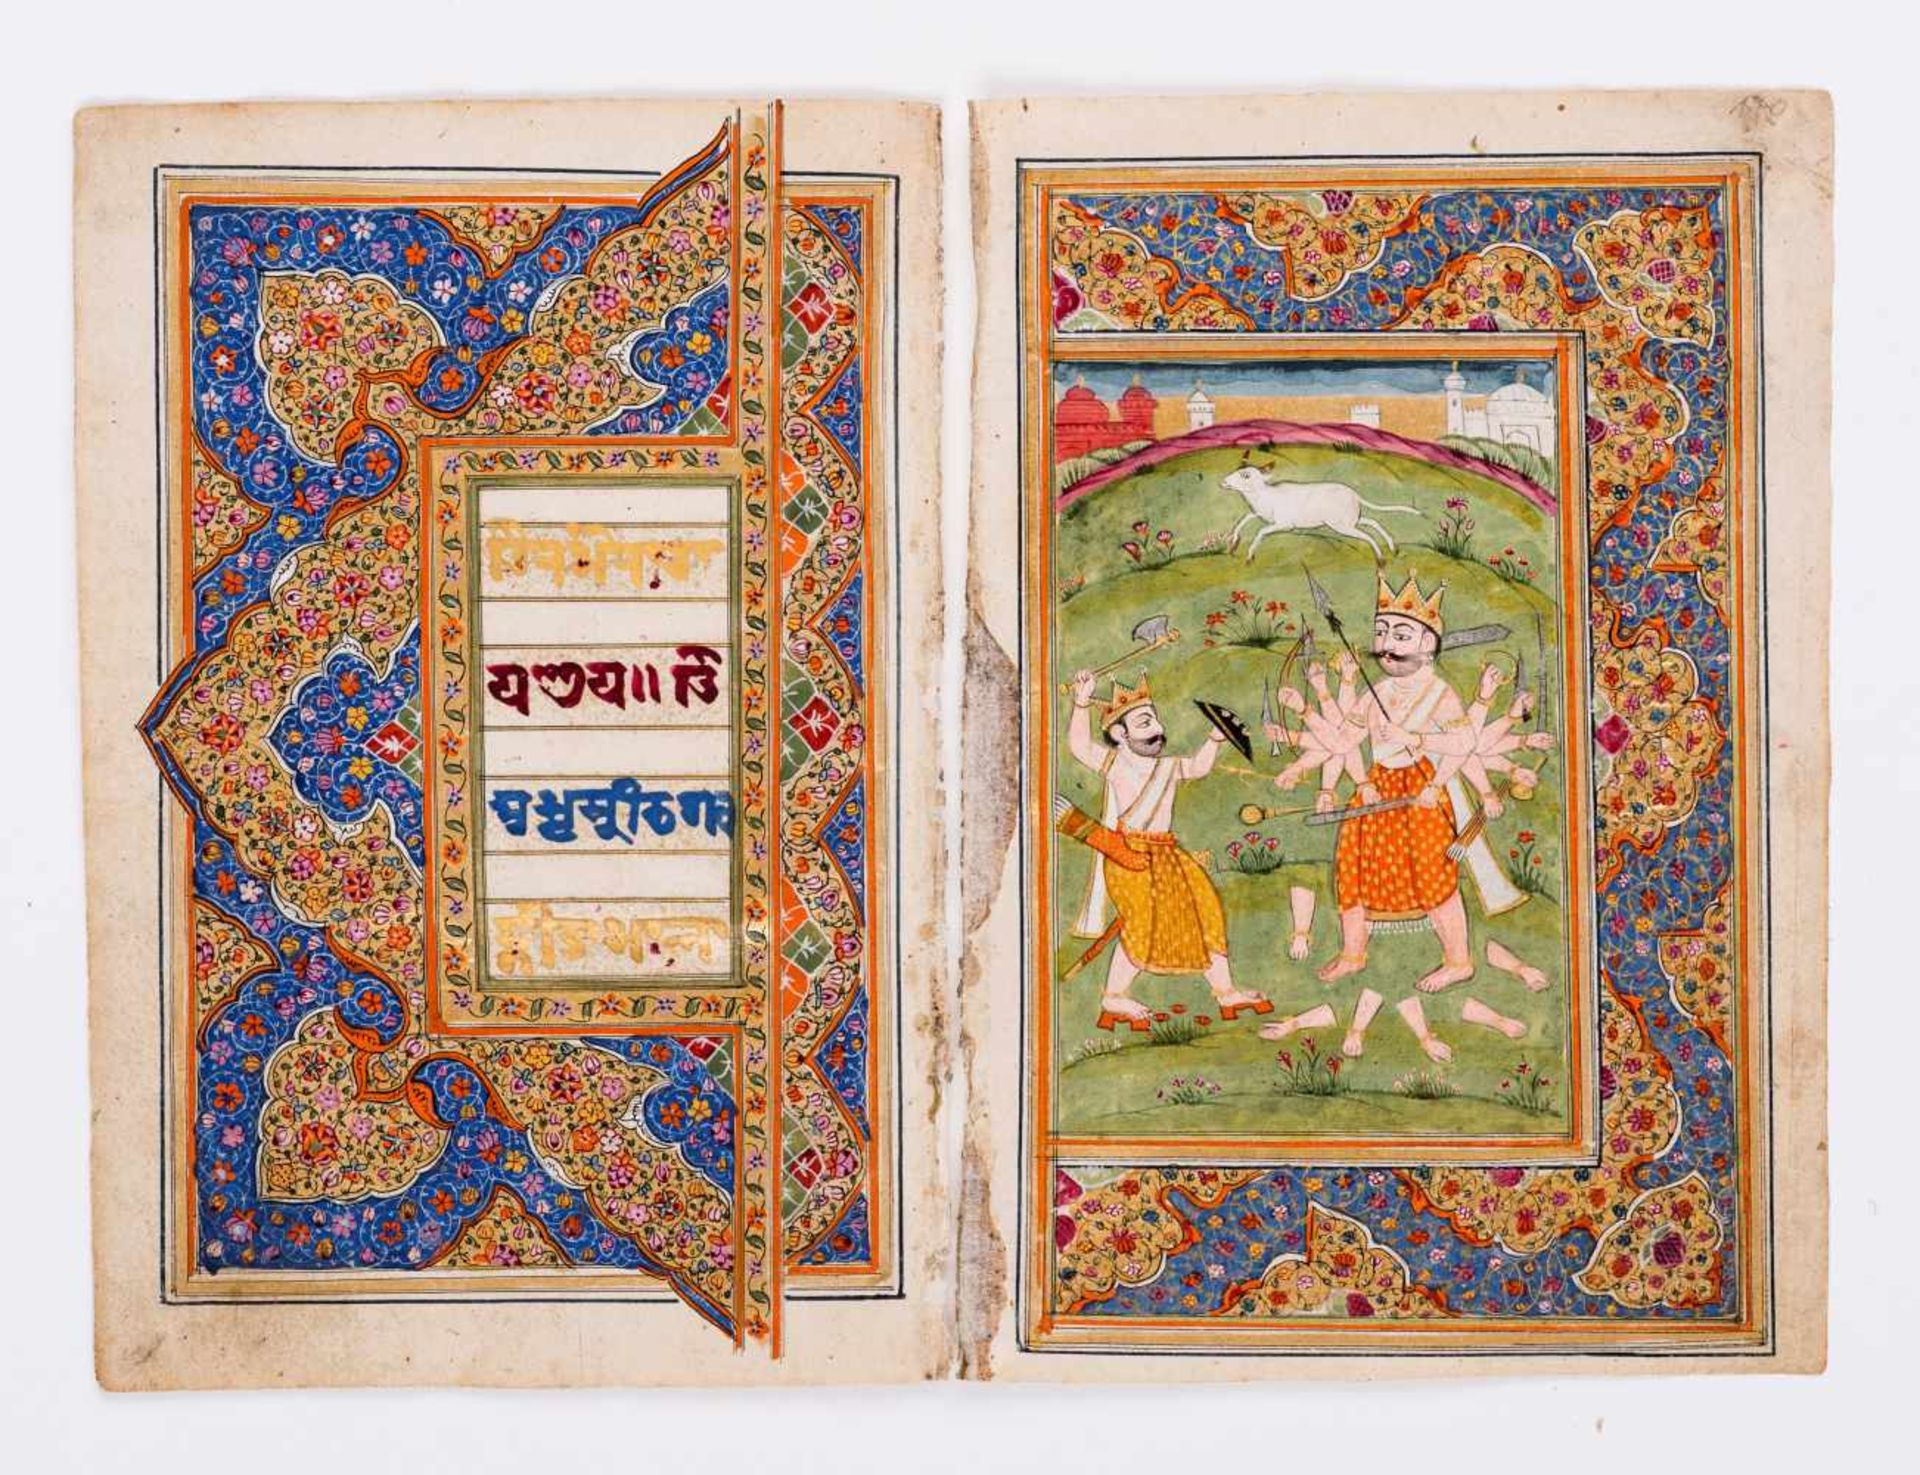 SIX MINIATURE PAINTINGS DEPICTING DEITIES - INDIA, 19th CENTURYMiniature painting with colors and - Image 2 of 7